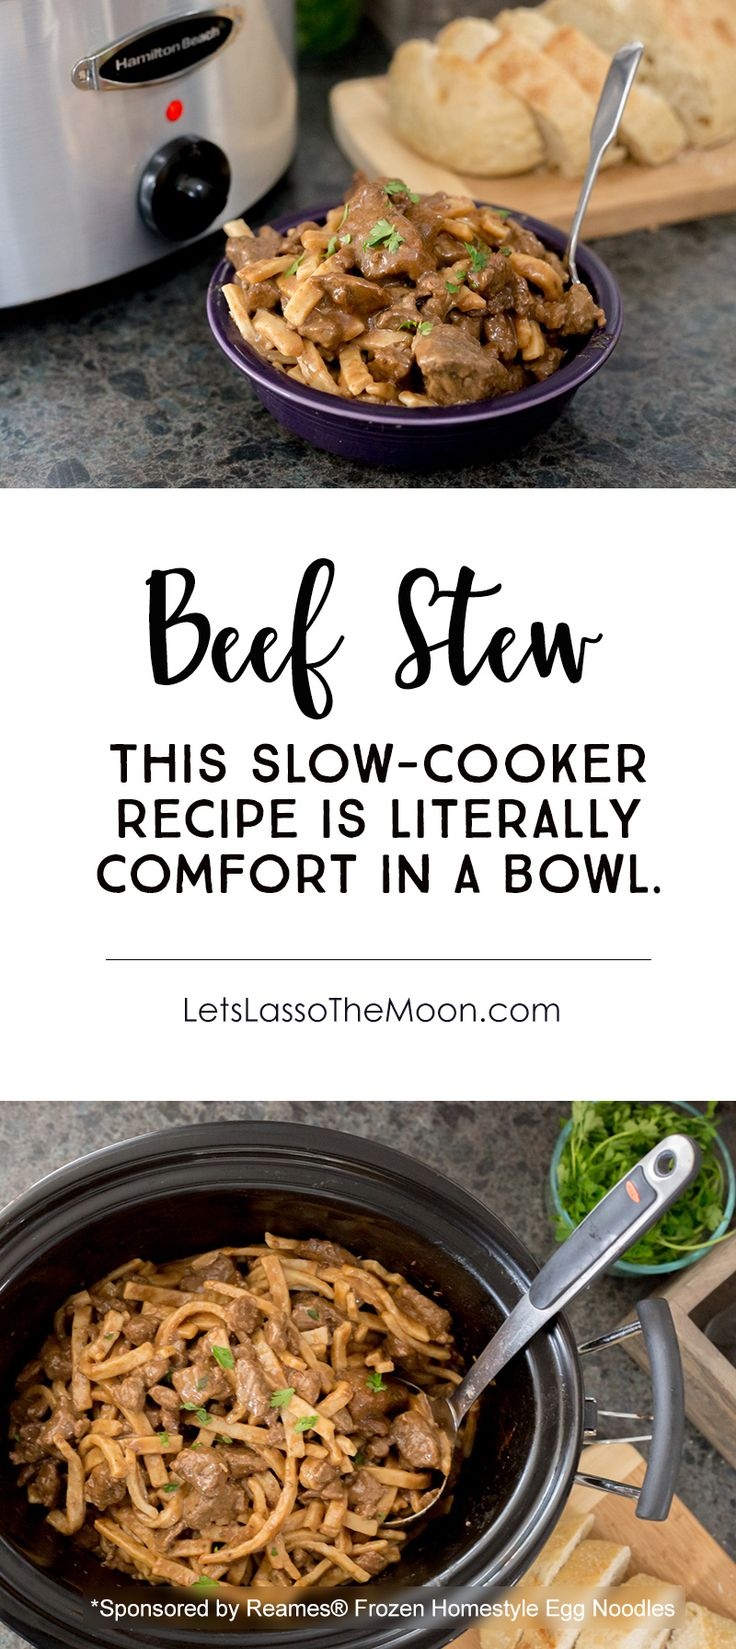 The Slow Cooker Beef Stew is a super easy weekday dinner recipe, but is also perfect for a family get together. This classic crock pot recipe is transformed with a few unexpected ingredients (Hint: it is not what you expect). Served with frozen egg noodles, it is the perfect winter meal. Comfort in a bowl. *My kids and husabdn REALLY liked this one!